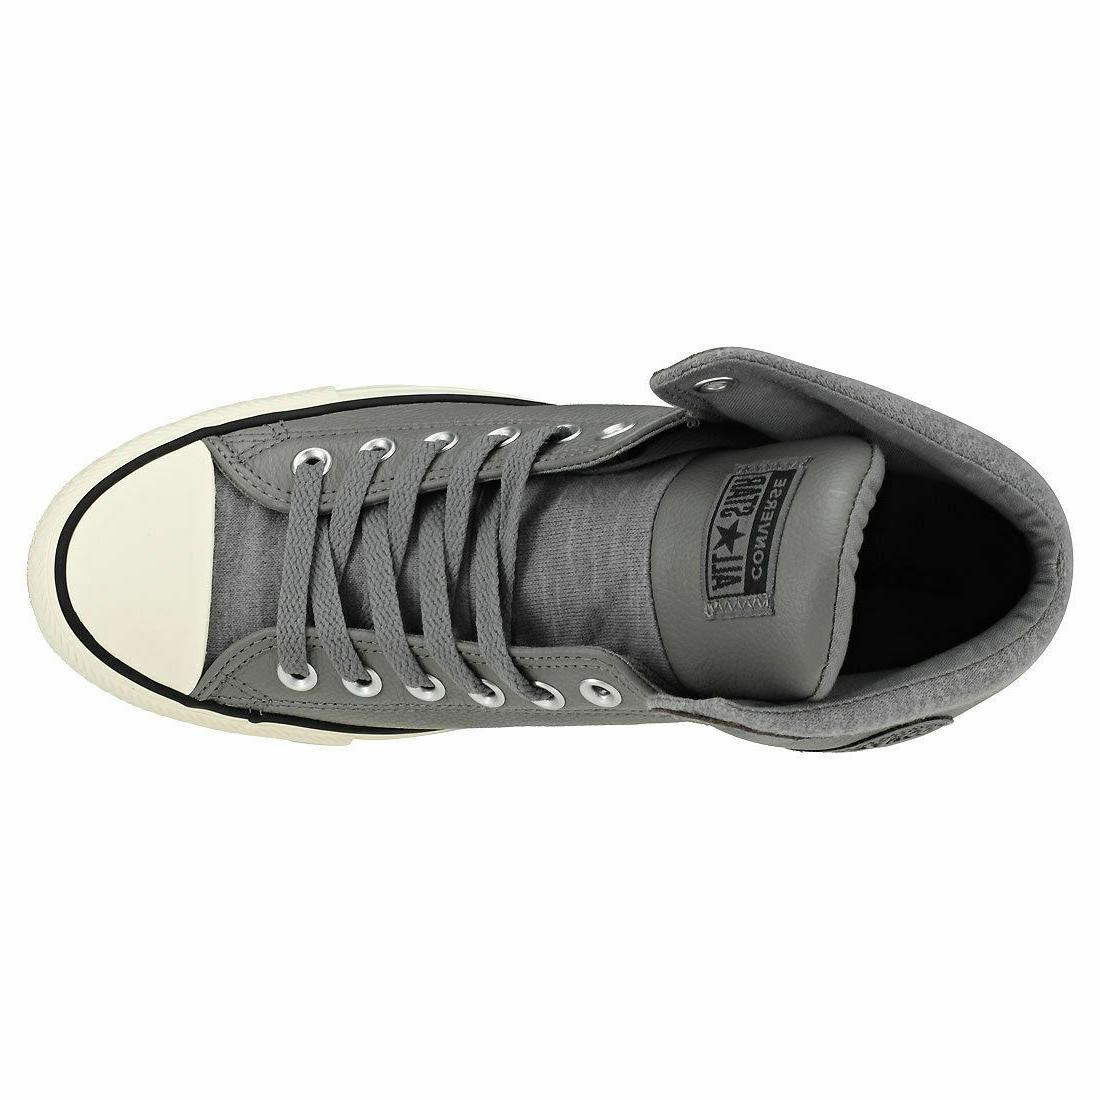 New Men Converse Ctas High Leather Boots Size